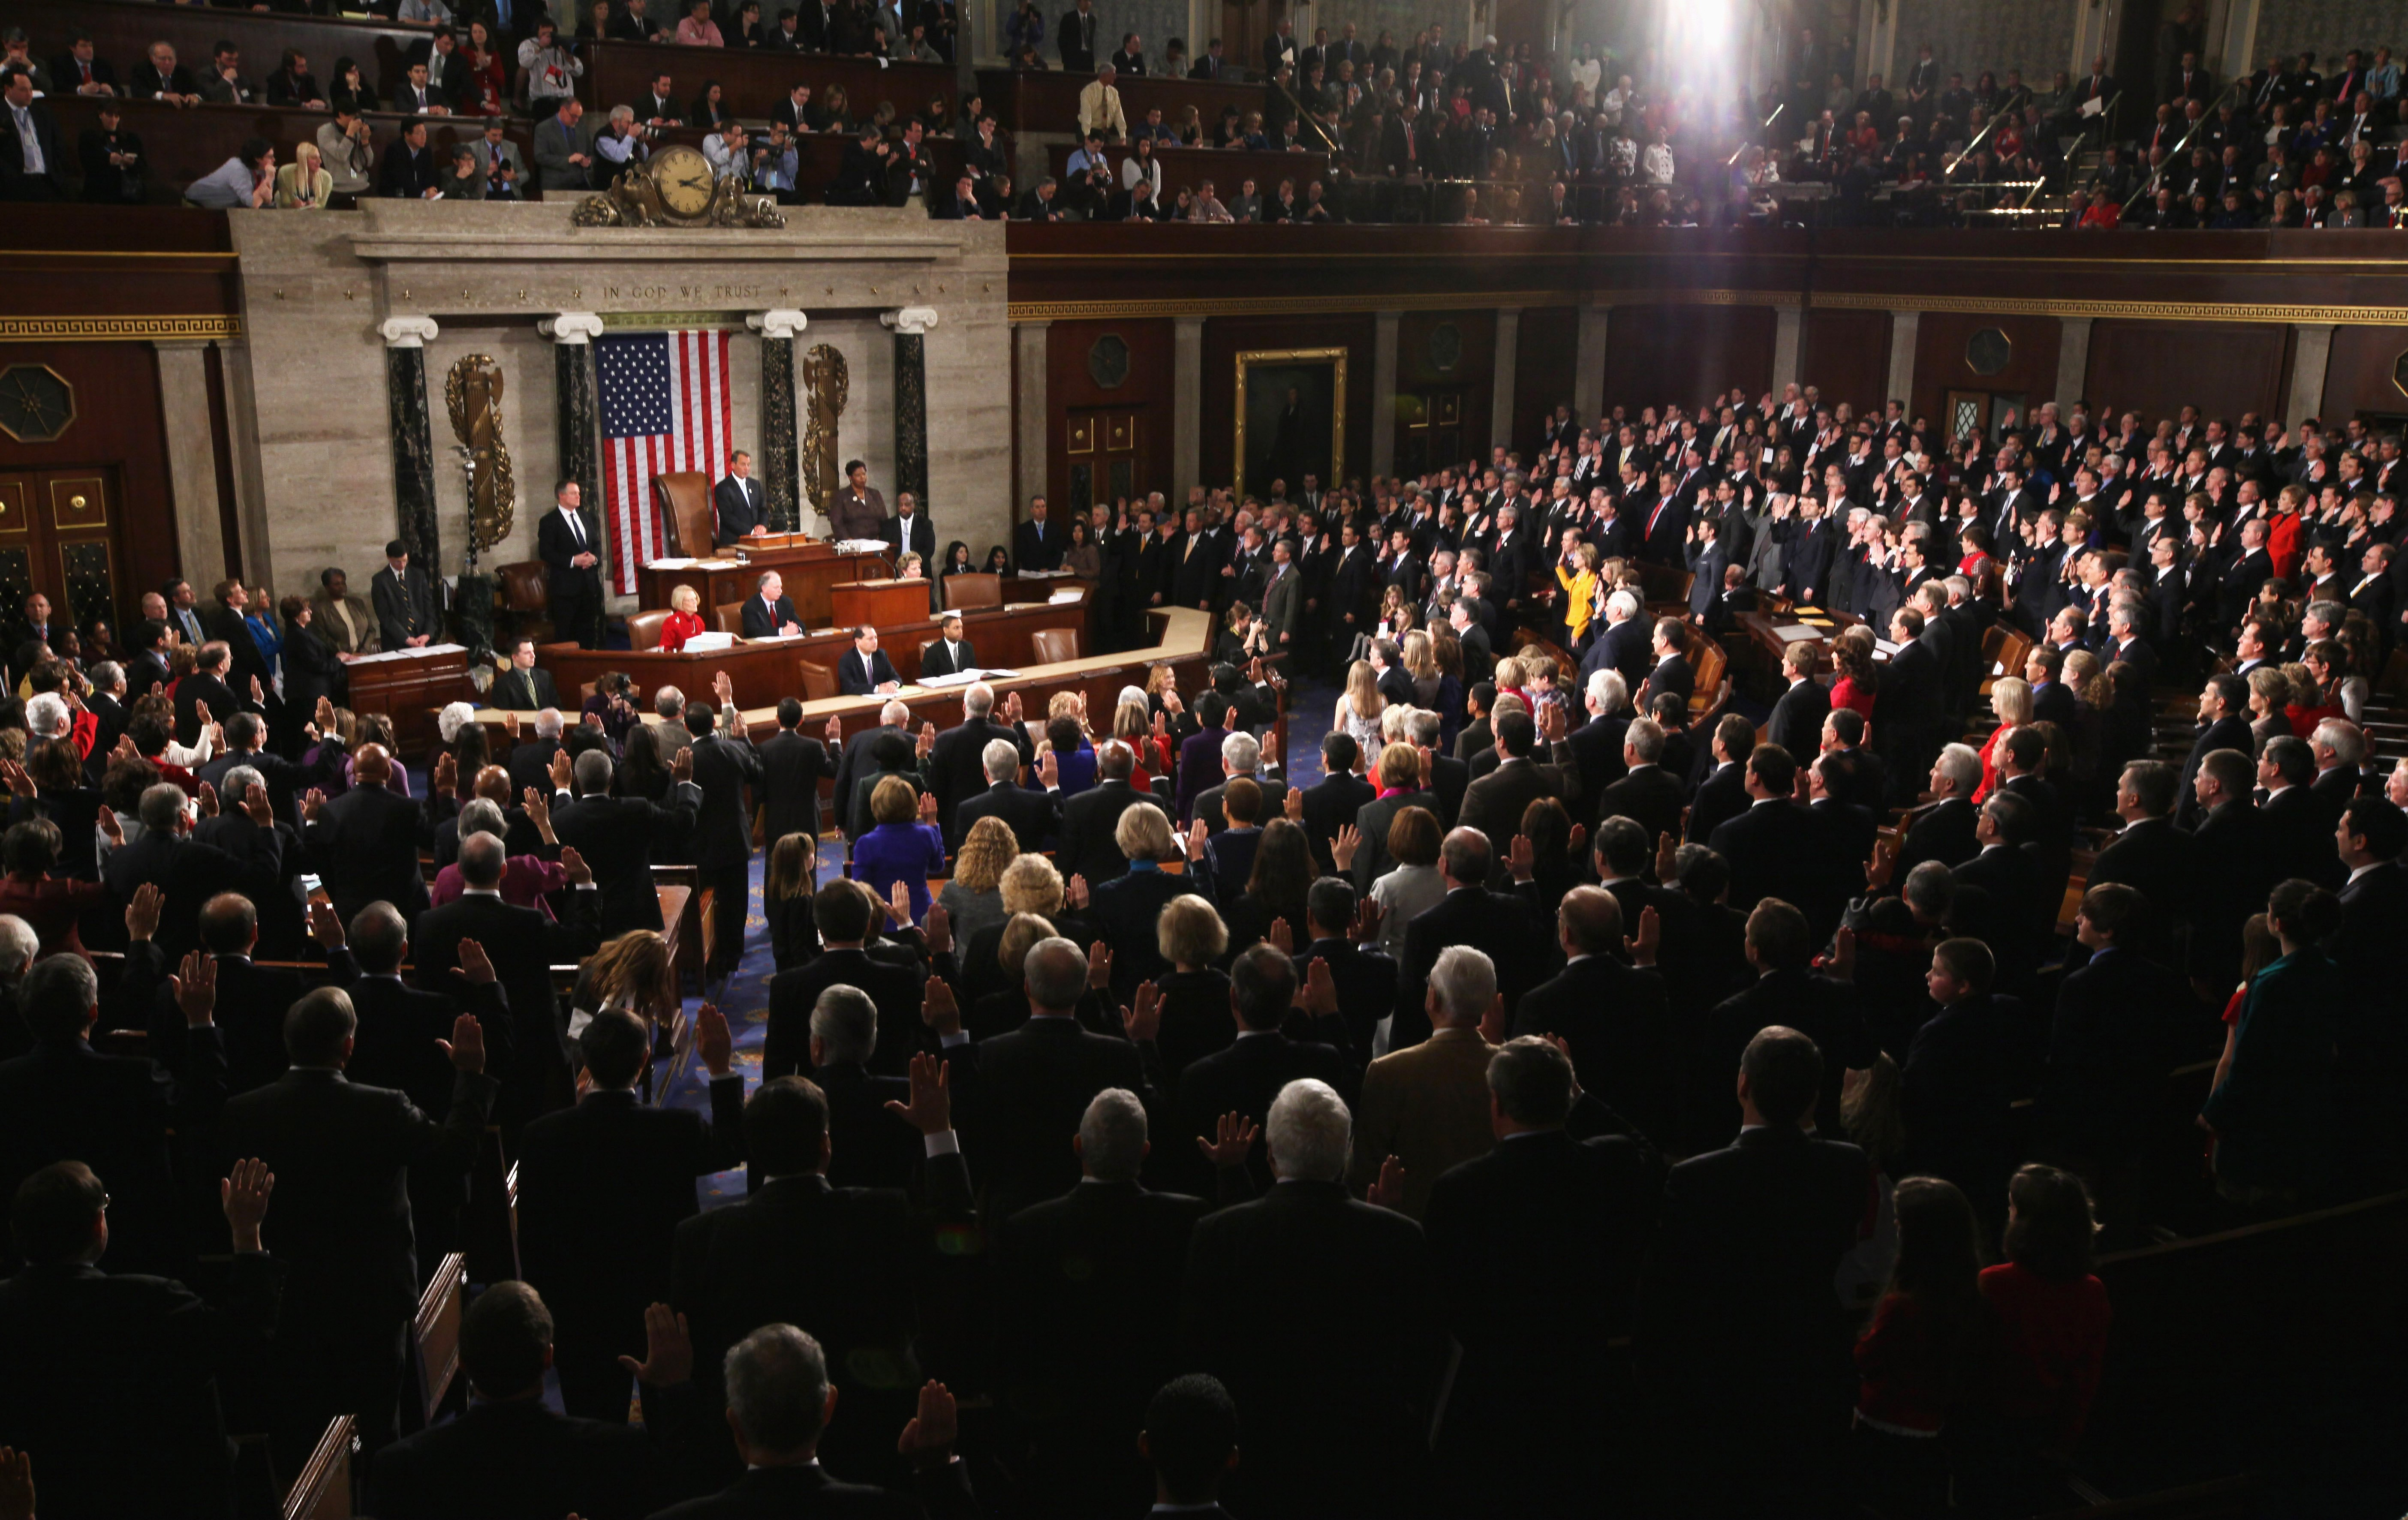 how do members of congress decide Members congress clinb the steps of the house of representatives for final votes, at the capitol in washington, thursday, july 31, 2014 congress ran full-tilt into election-year gridlock.